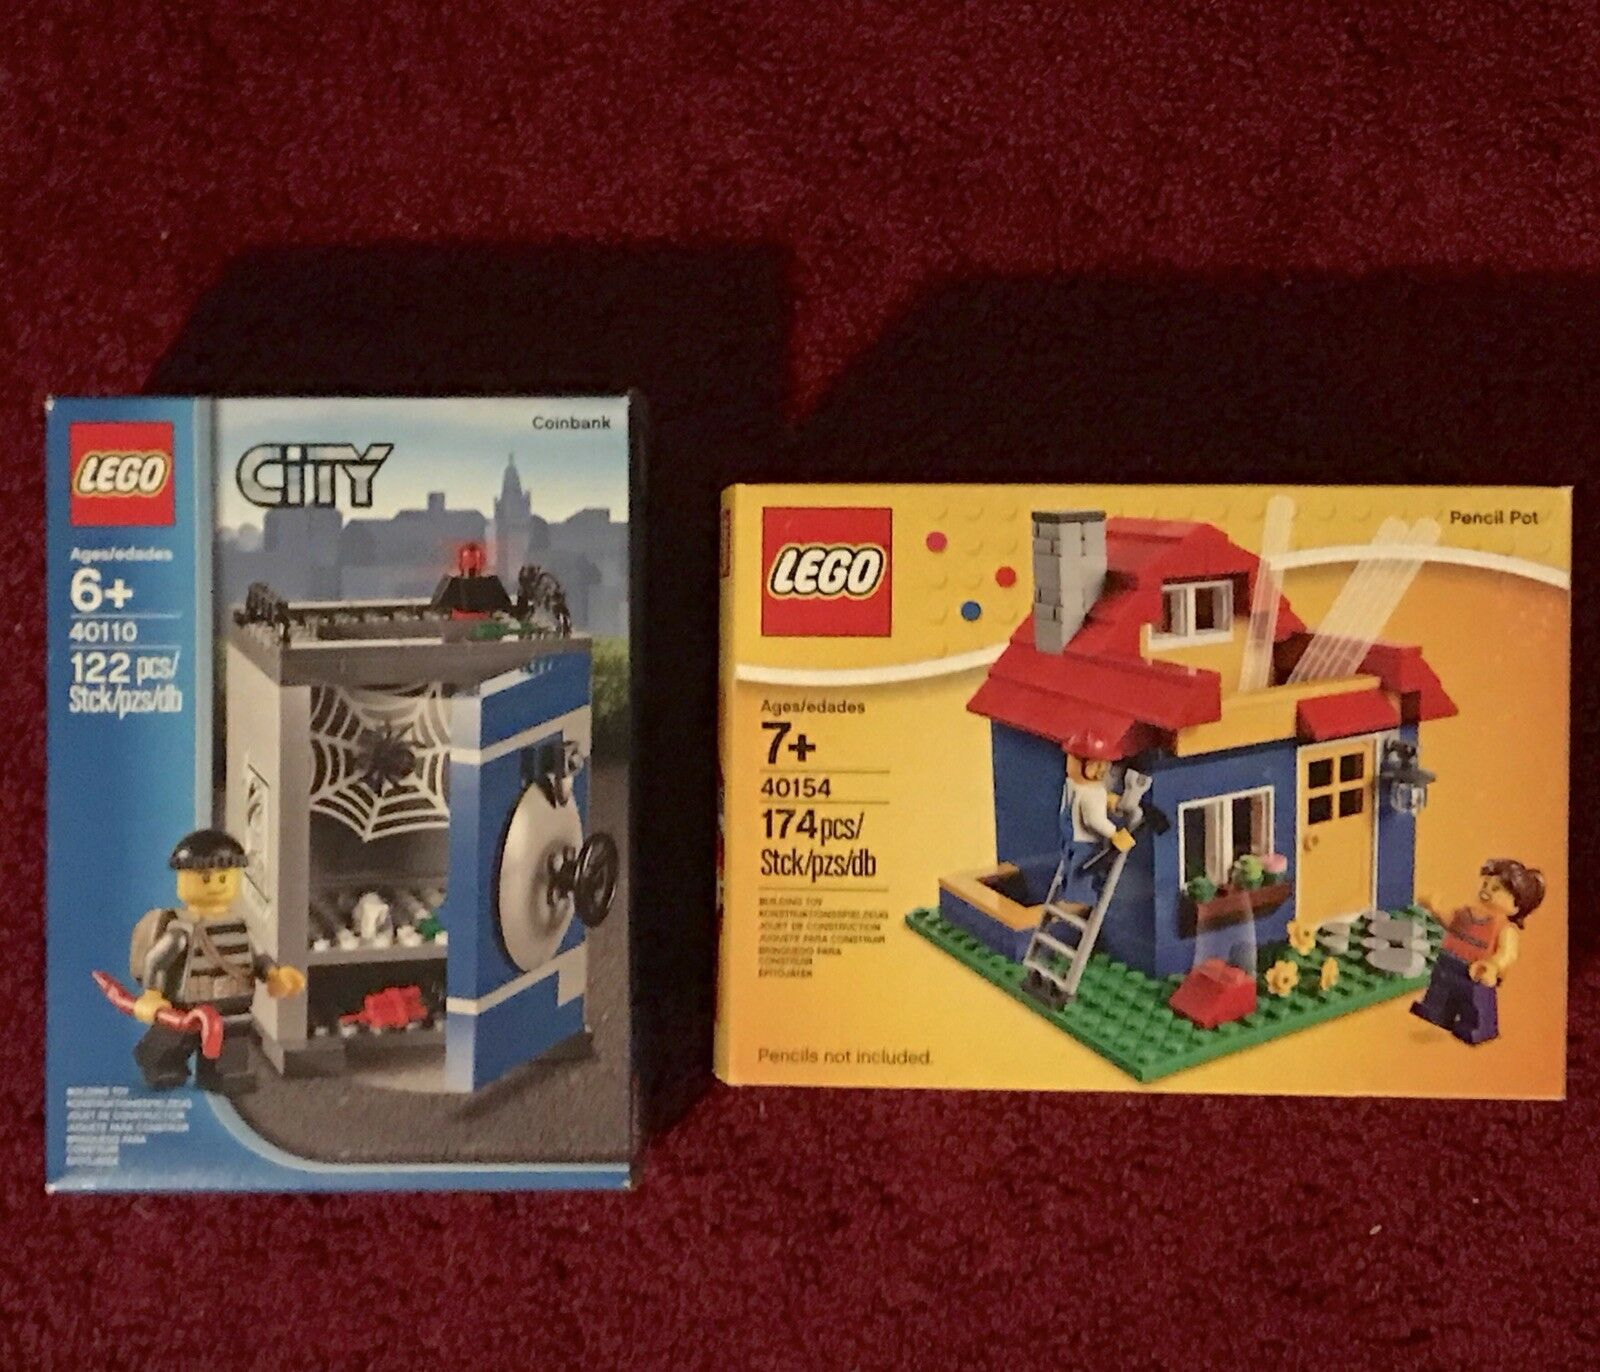 Lego City Coin Bank 40110 And Pencil Pot 40154 ~new Sealed Retirosso Sets~